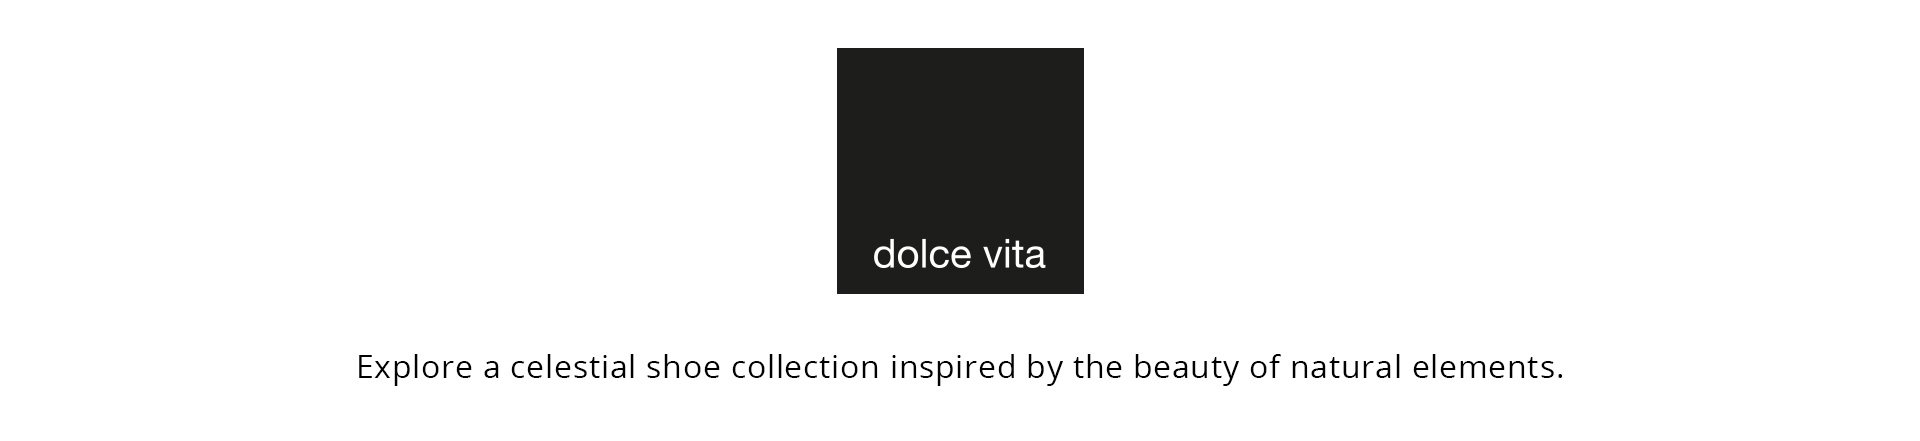 Dolce Vita. Explore a celestial shoe collection inspired by the beauty of natural elements.